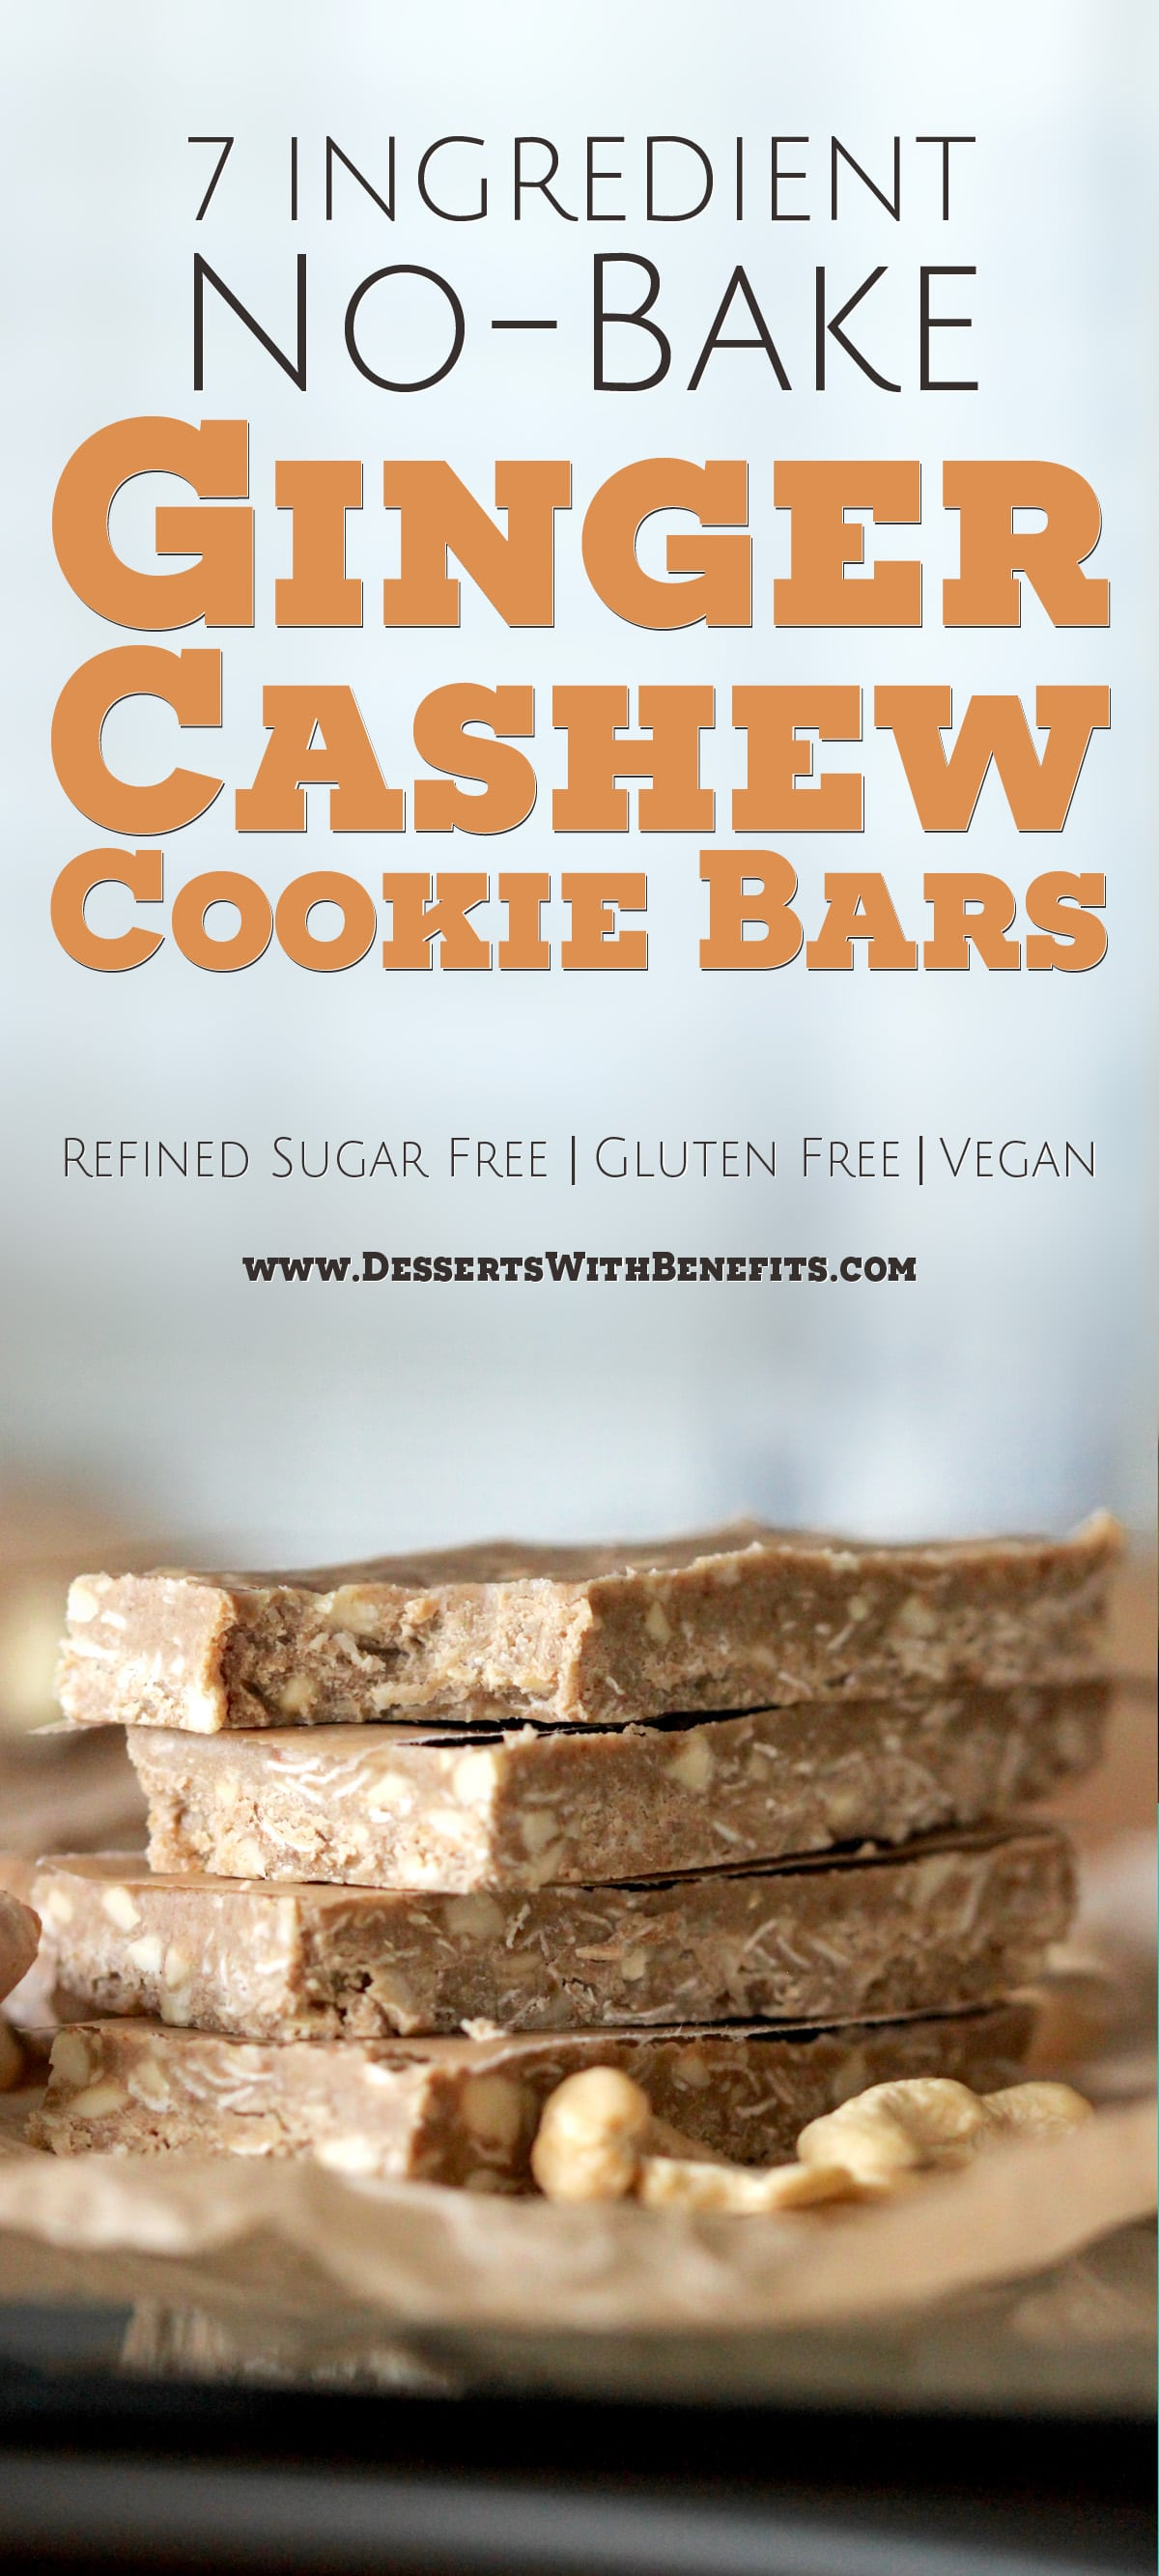 Love granola bars but think it's too hot out to turn on the oven? Make these Healthy NO-BAKE Ginger Cashew Cookie Bars! They're chewy like energy bars, hearty like granola bars, and sweet like cookies! Made with just seven ingredients, including oats, cashews, coconut oil, pure maple syrup, and ginger, these bars will satisfy your sweet tooth and your hunger pangs. -- Healthy Dessert Recipes with sugar free, low calorie, low fat, high protein, gluten free, dairy free, vegan, and raw options at the Desserts With Benefits Blog (www.DessertsWithBenefits.com)